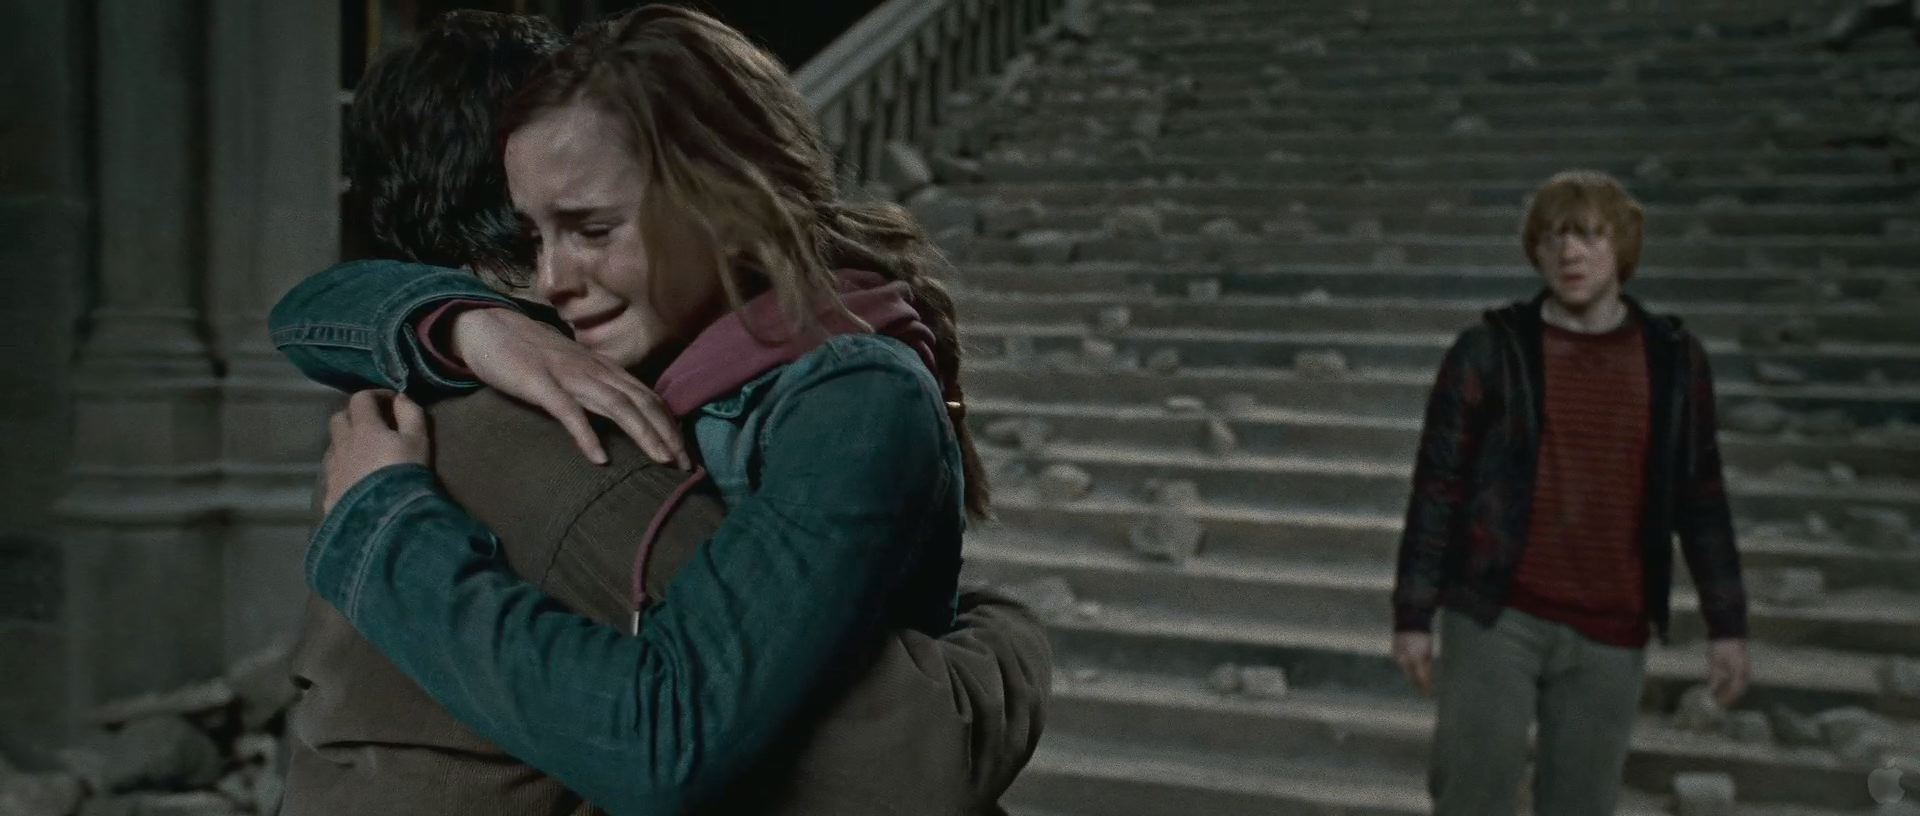 Hermione Hugging Harry File:harry And Hermione Hug